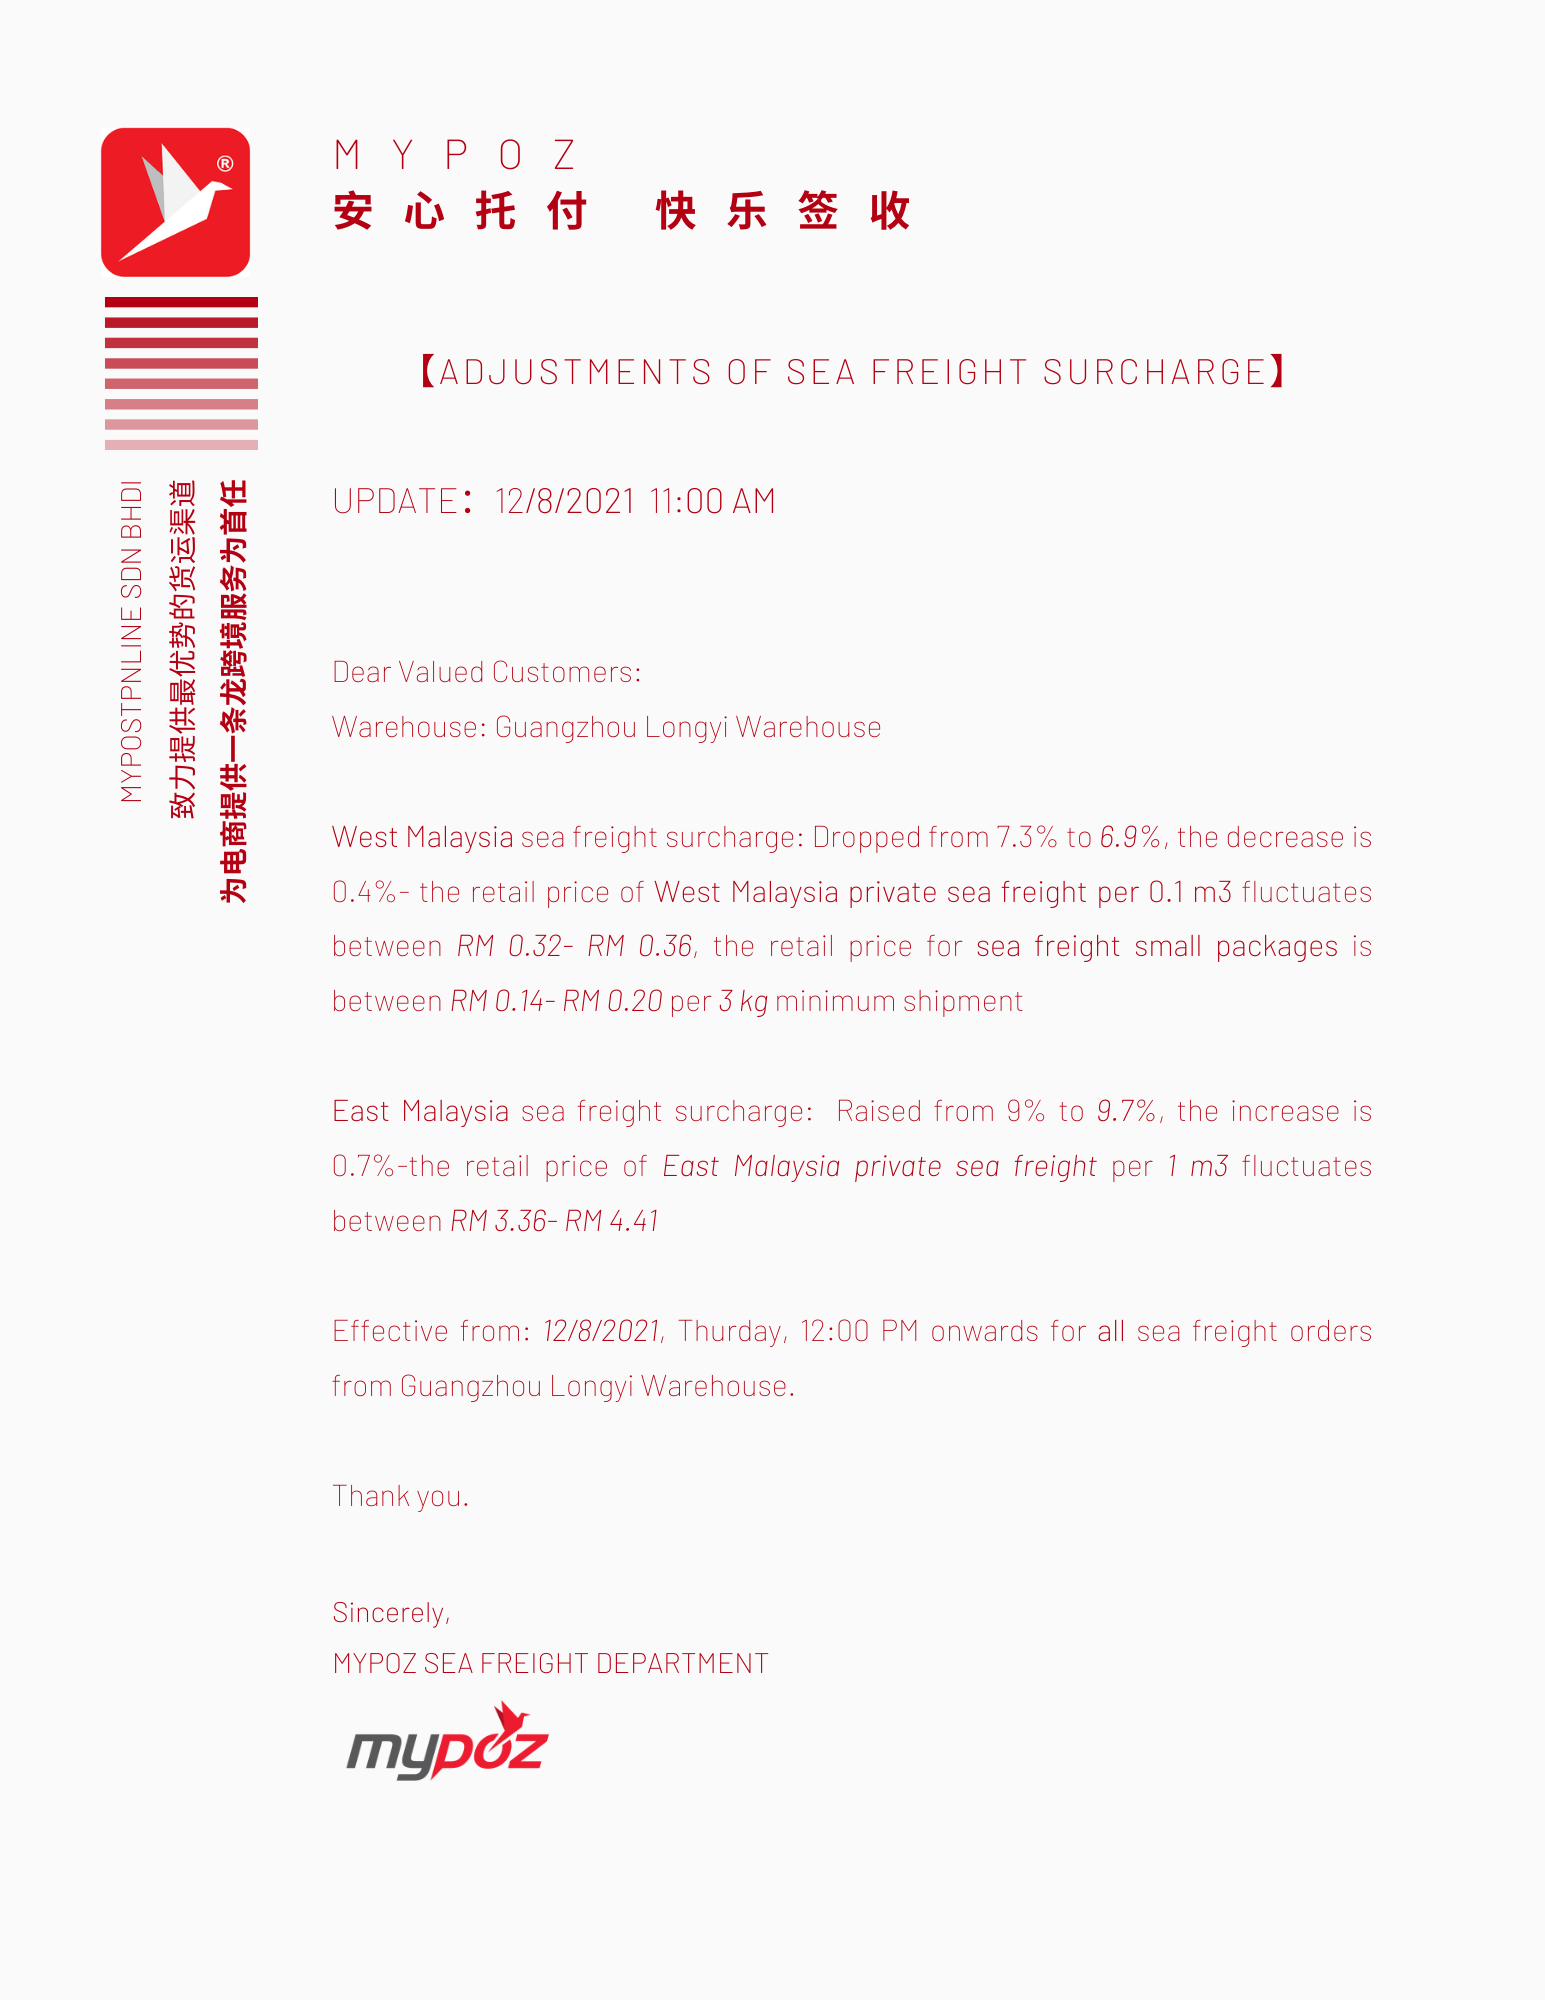 【UPDATE】ADJUSTMENTS OF SEA FREIGHT SURCHARGE